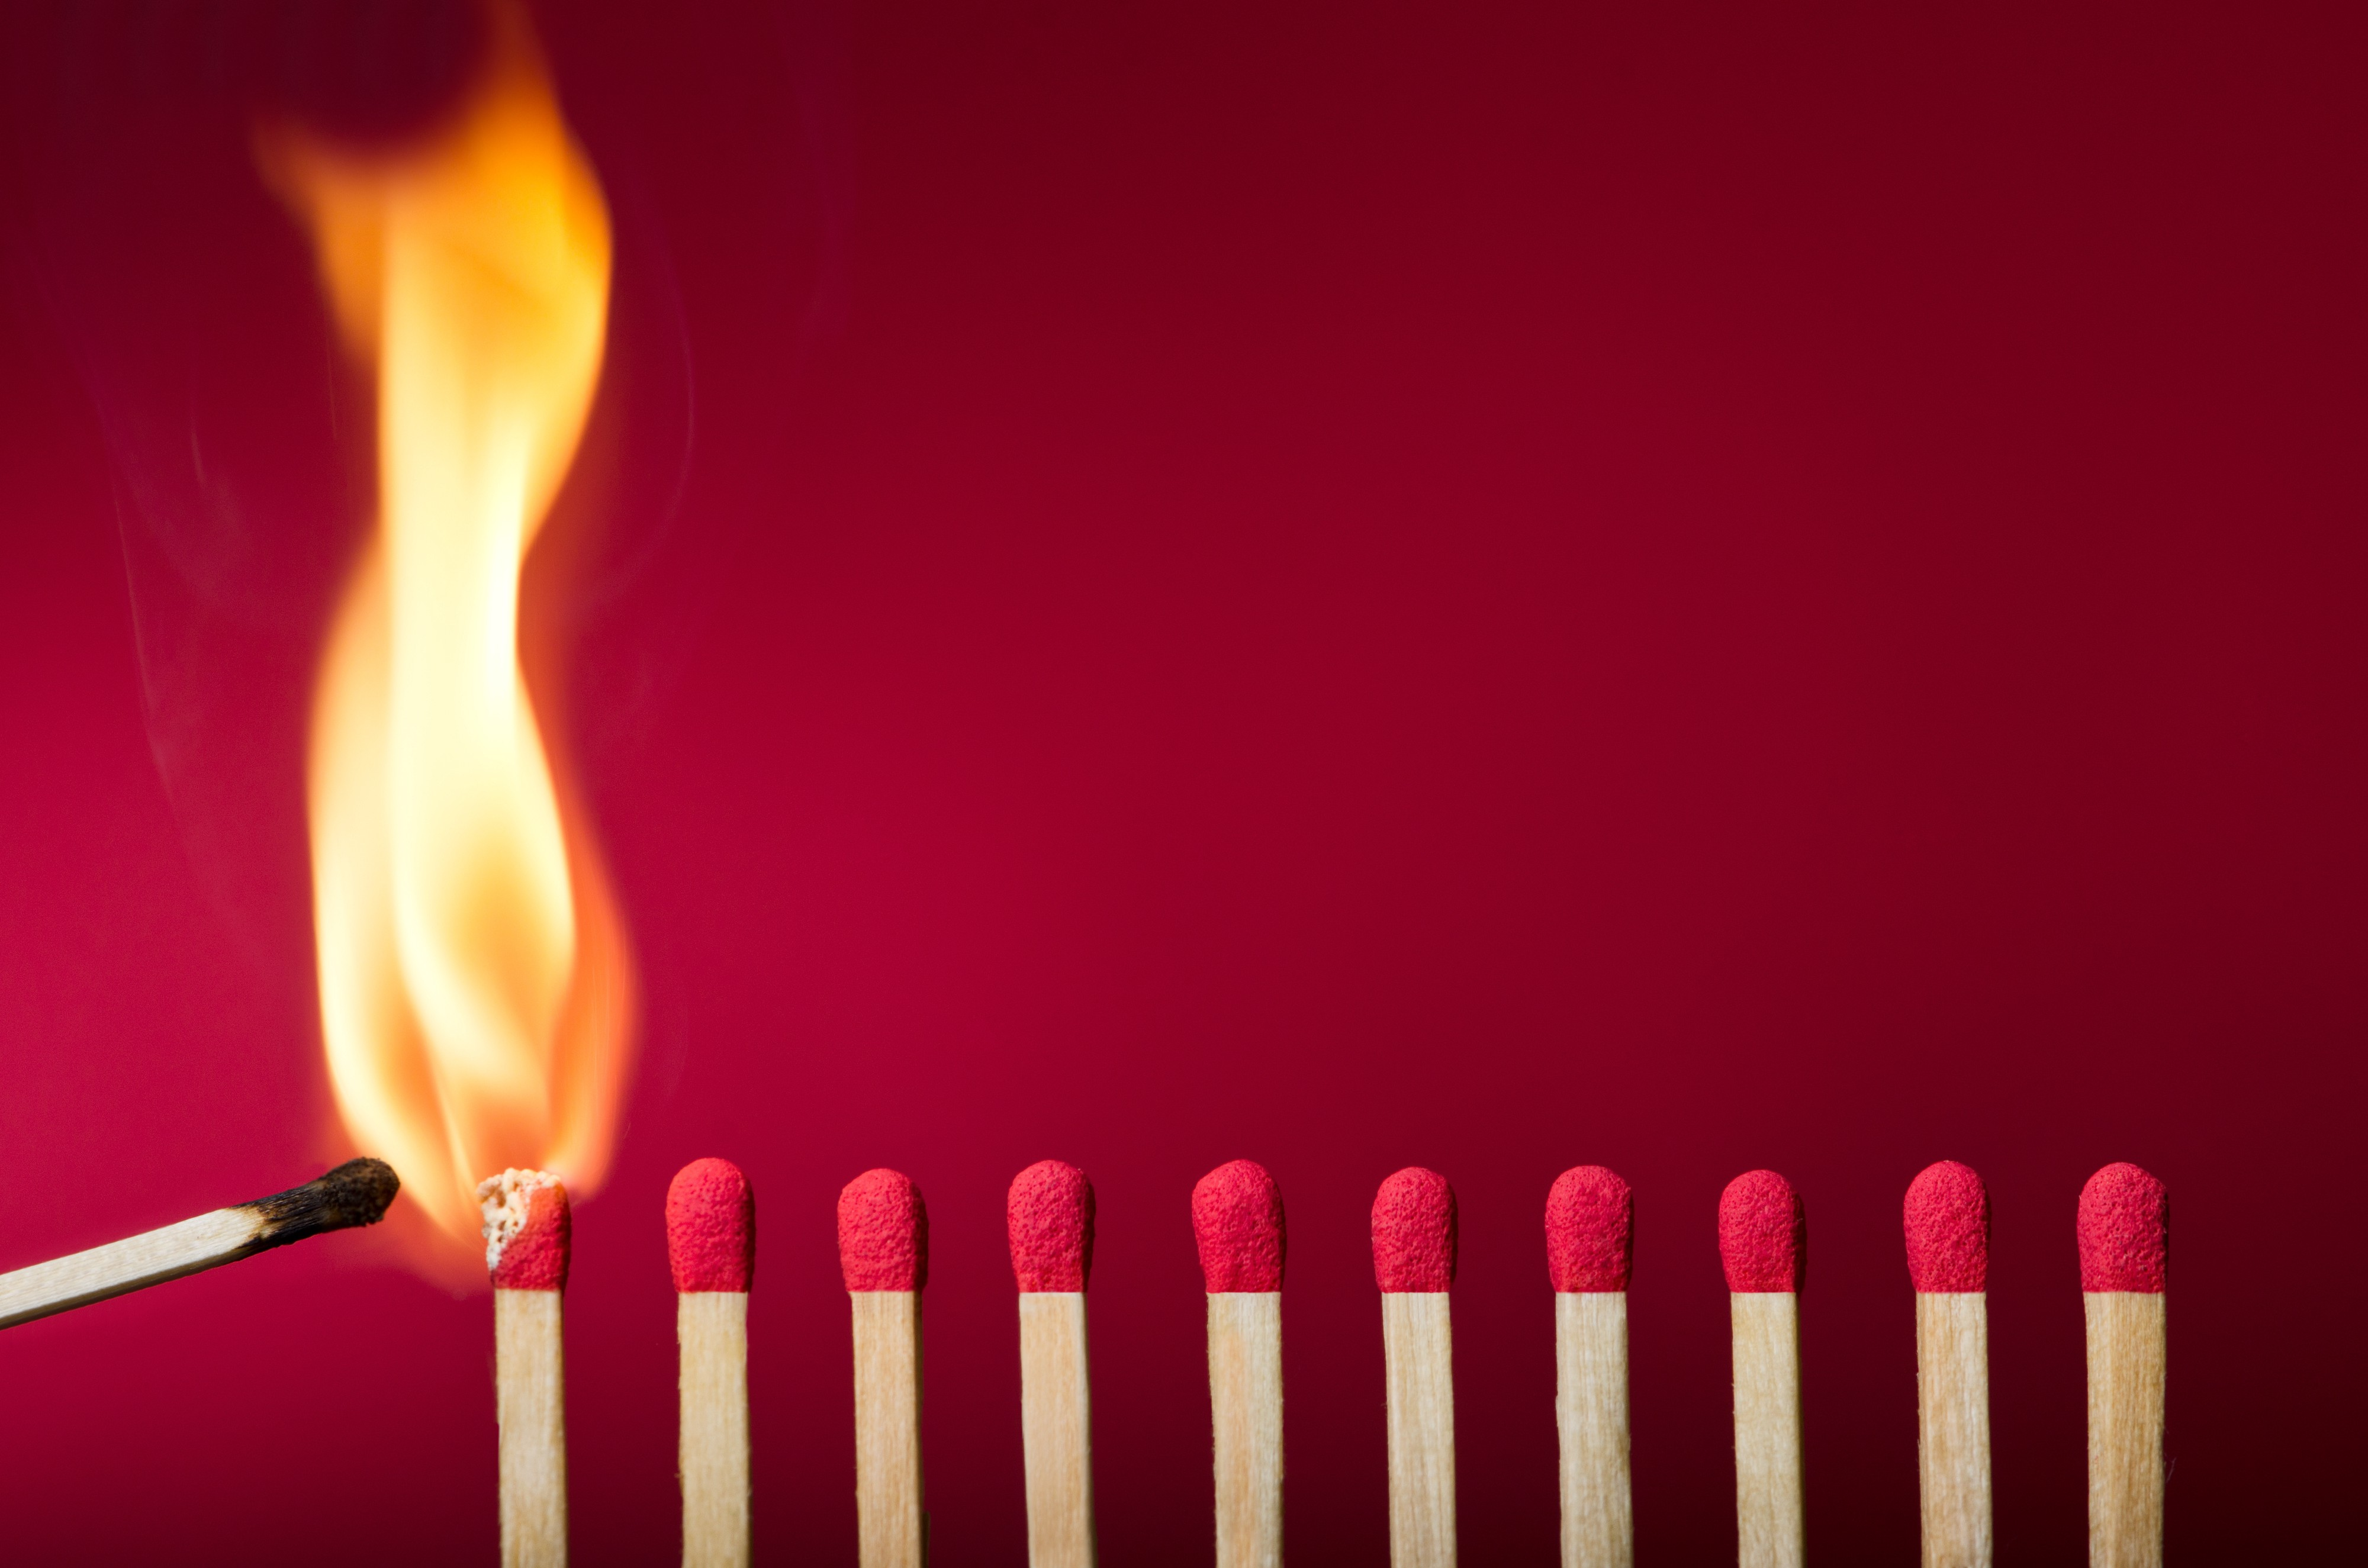 Row of closely spaced unlit wooden matches next to two that are burning against a red background